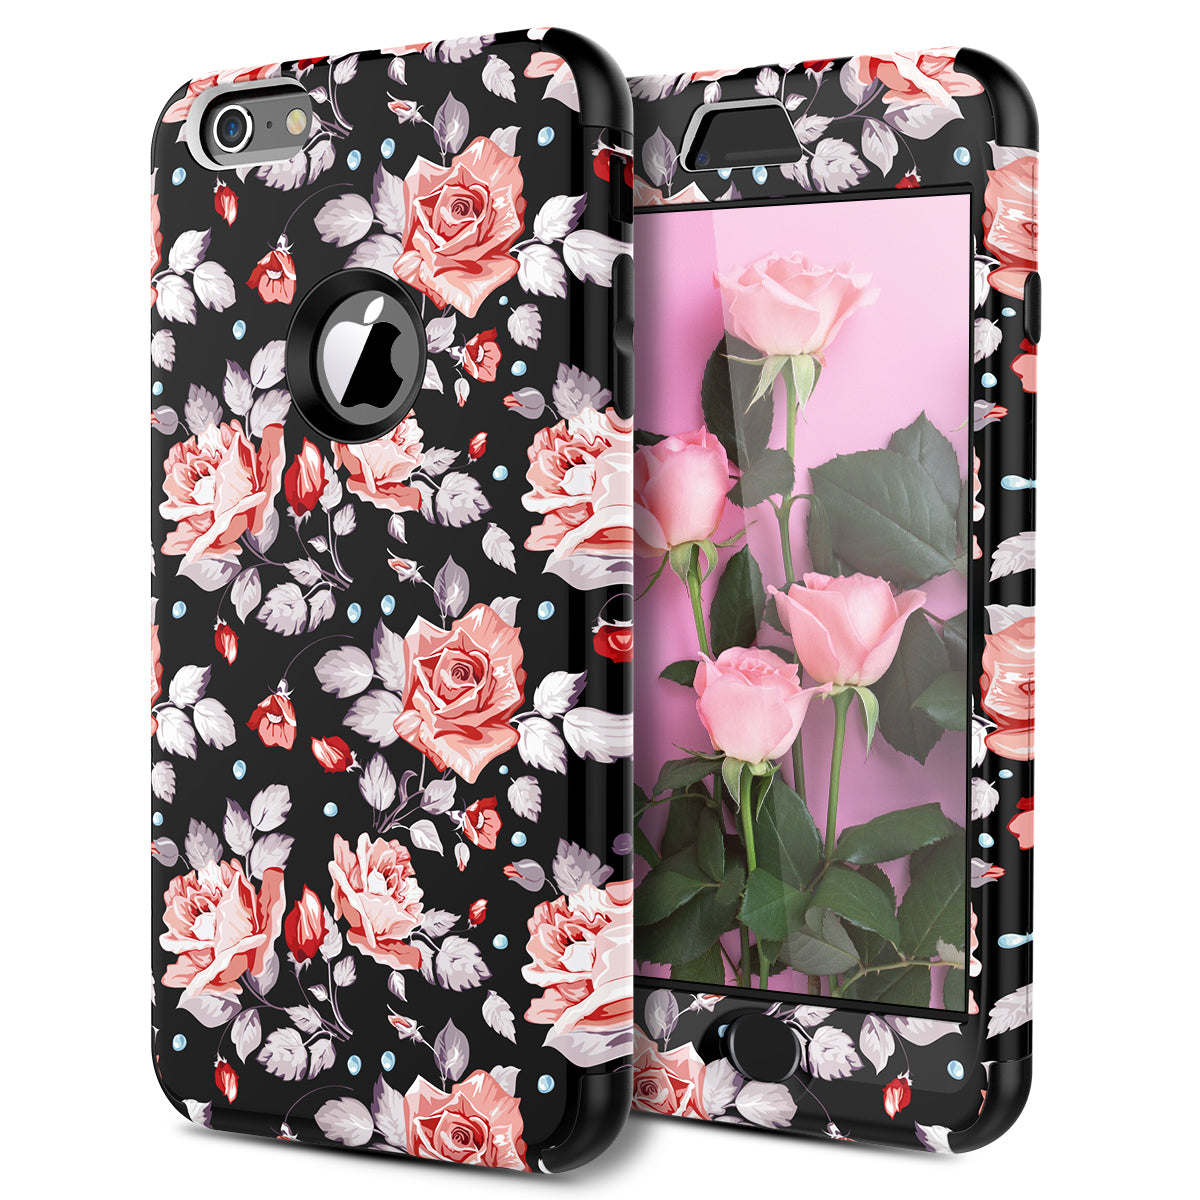 Iphone 6 Plus 6s Plus Case Floral Rose Flower Case For Women Girl